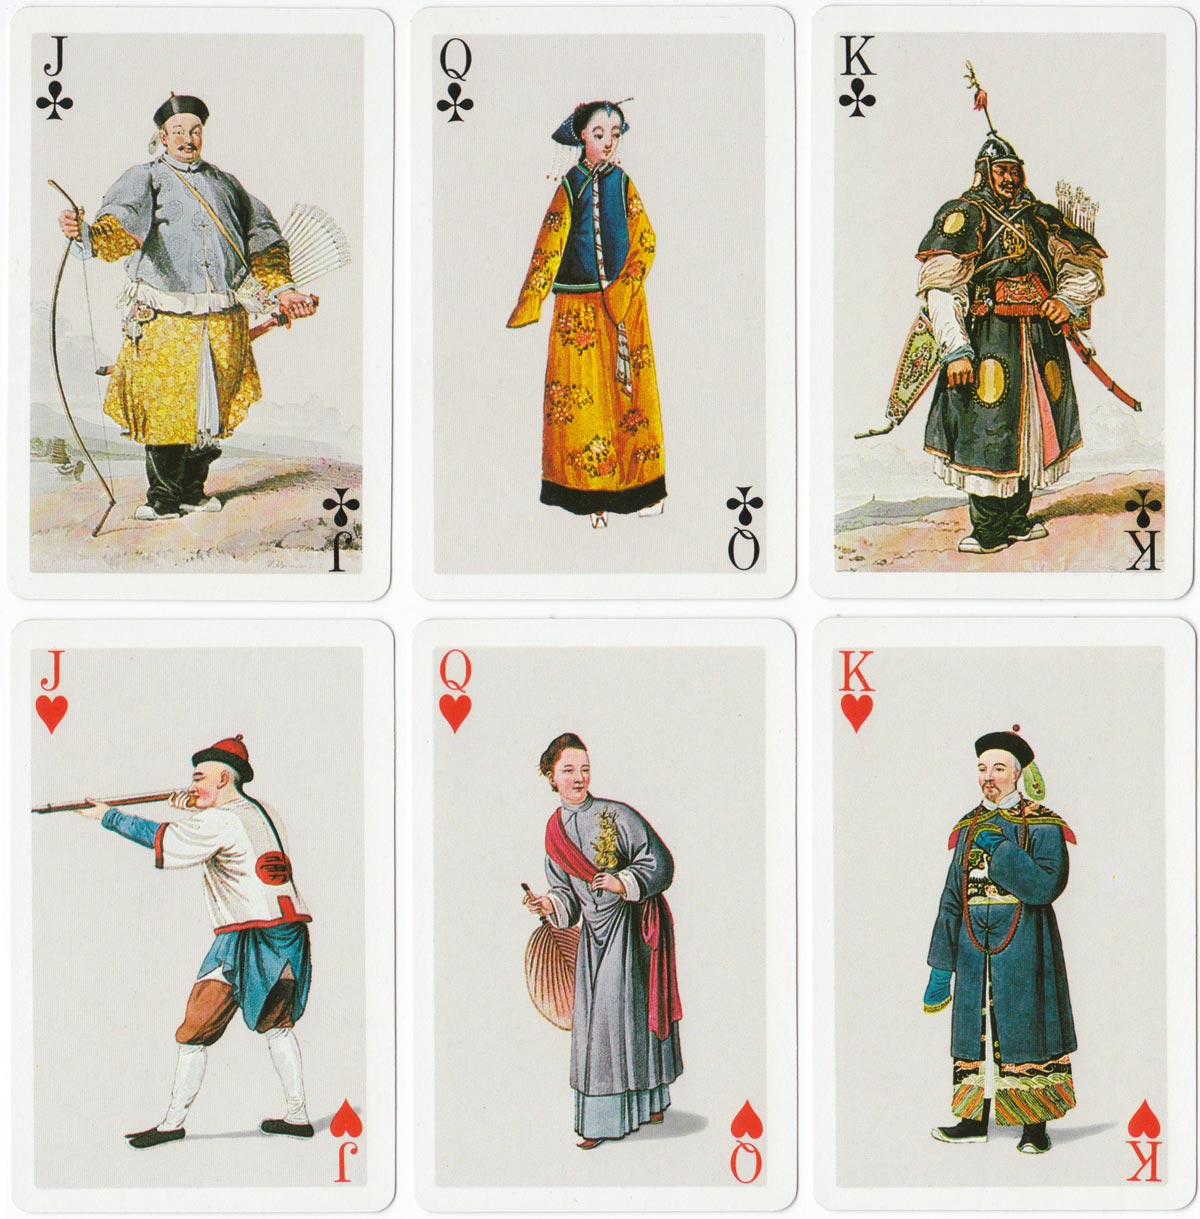 Chinese Costumes playing cards, published by Fournier, 1984